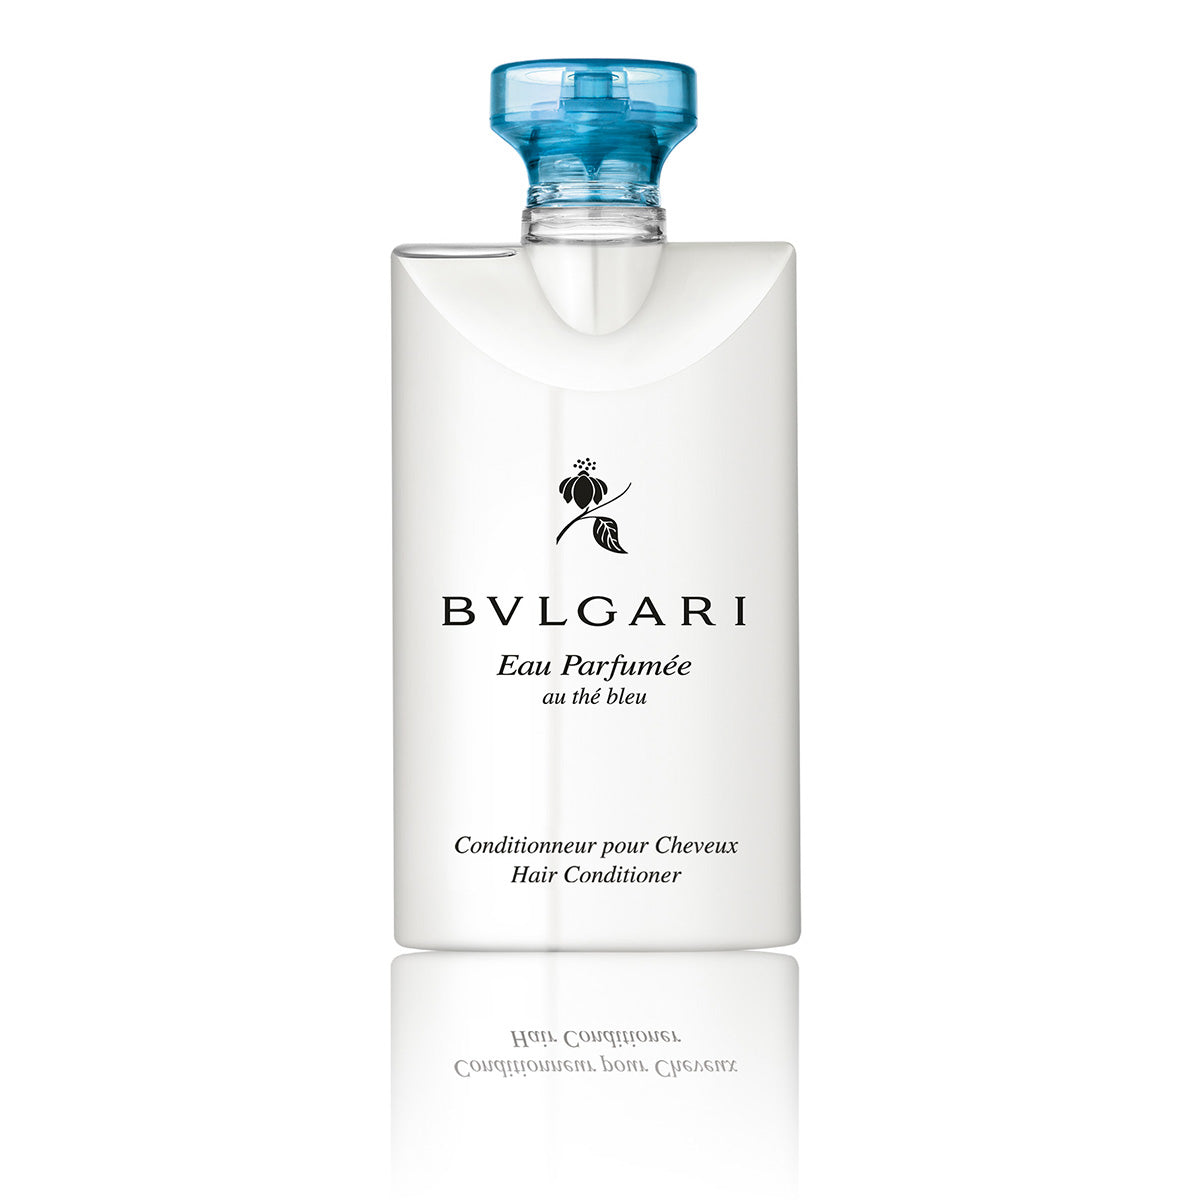 BVLGARI Blue Tea Hair Conditioner, 75ml